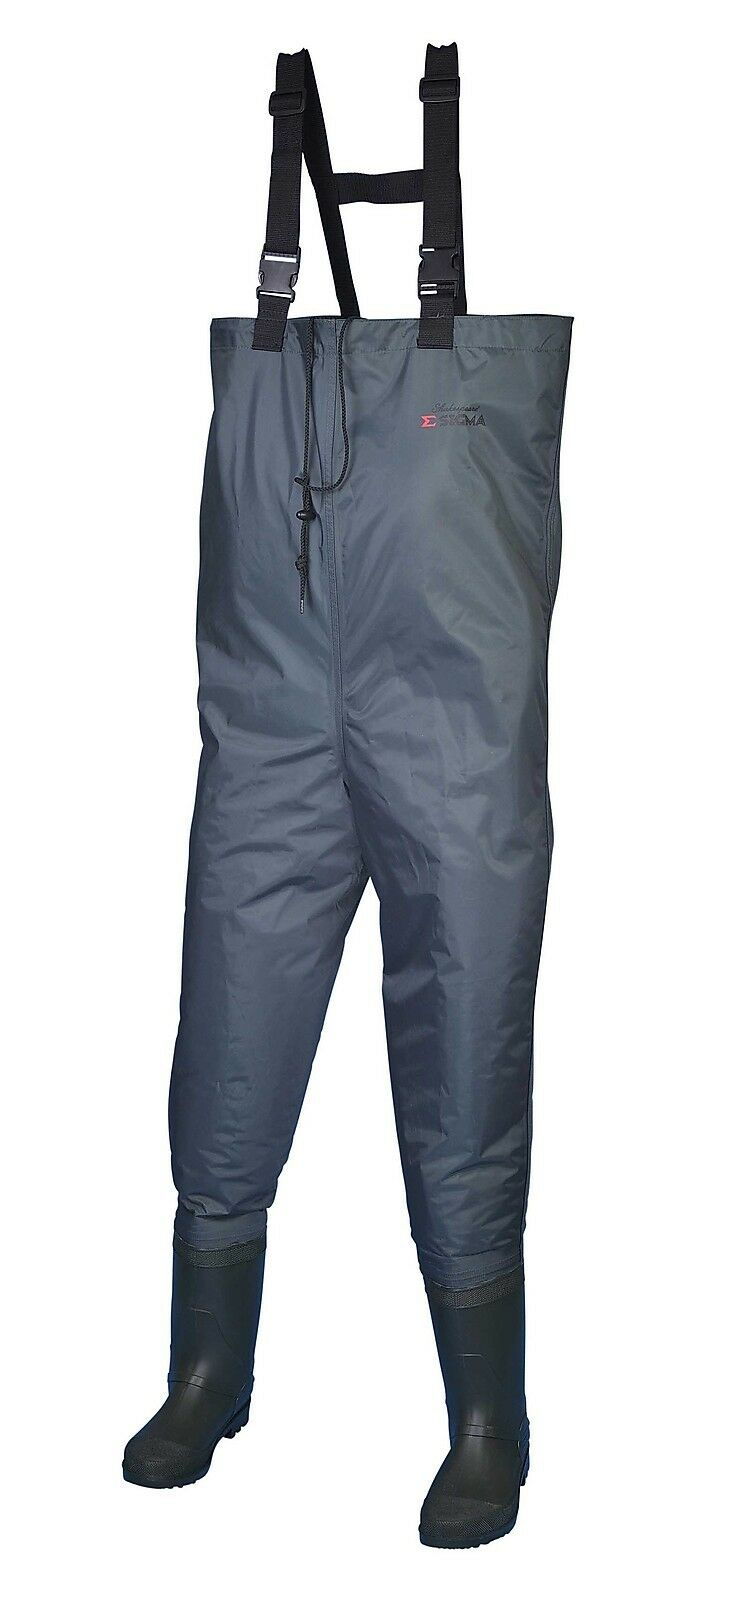 Shakespeare Sigma Nylon Chest Fishing Waders Cleated Sole - Green - Sizes 7 to12